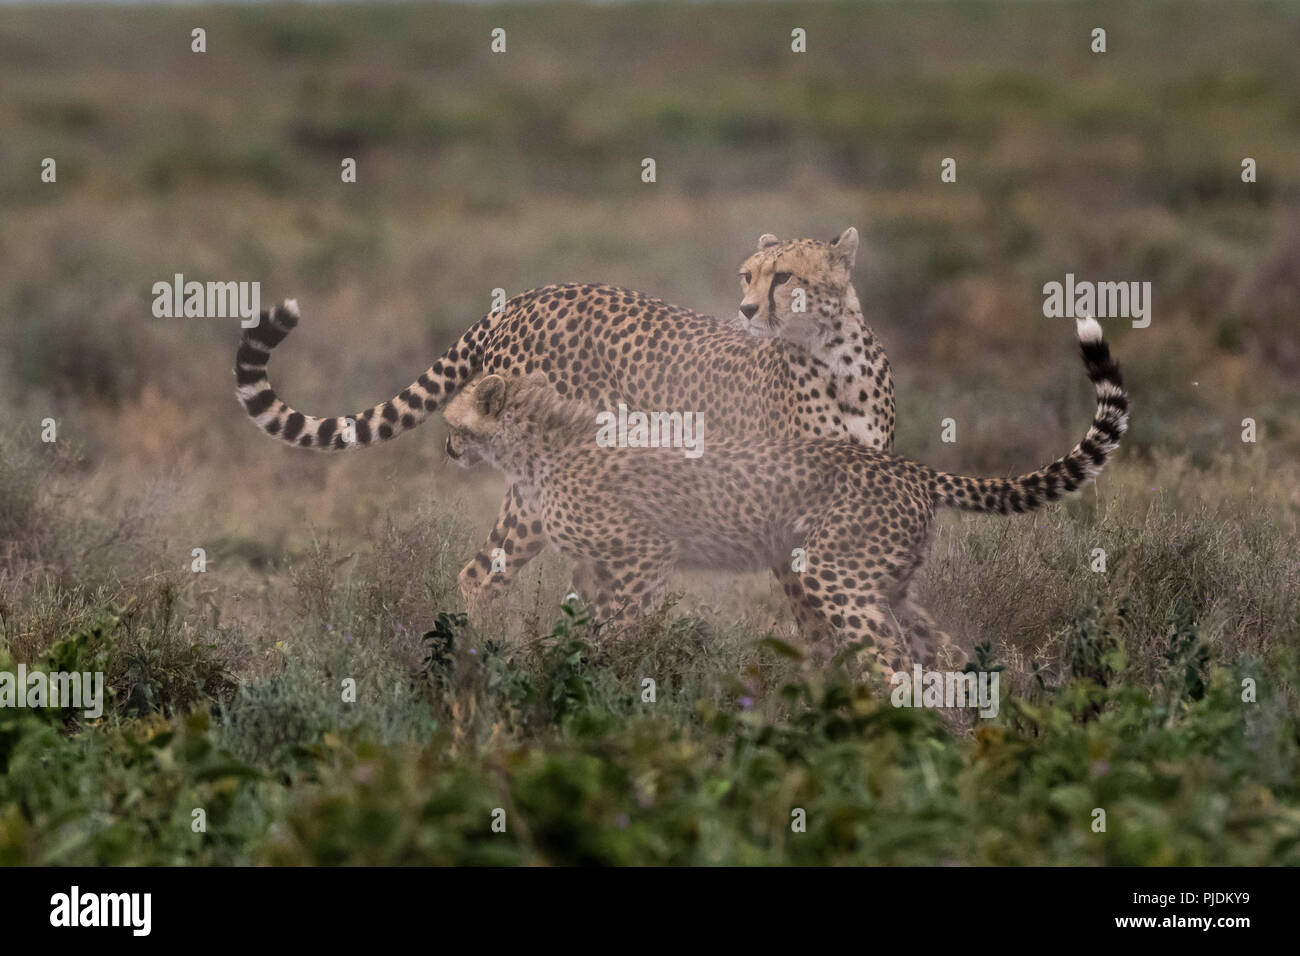 A female cheetah (Acinonyx jubatus) and its cub sparring, Ndutu, Ngorongoro Conservation Area, Serengeti, Tanzania - Stock Image